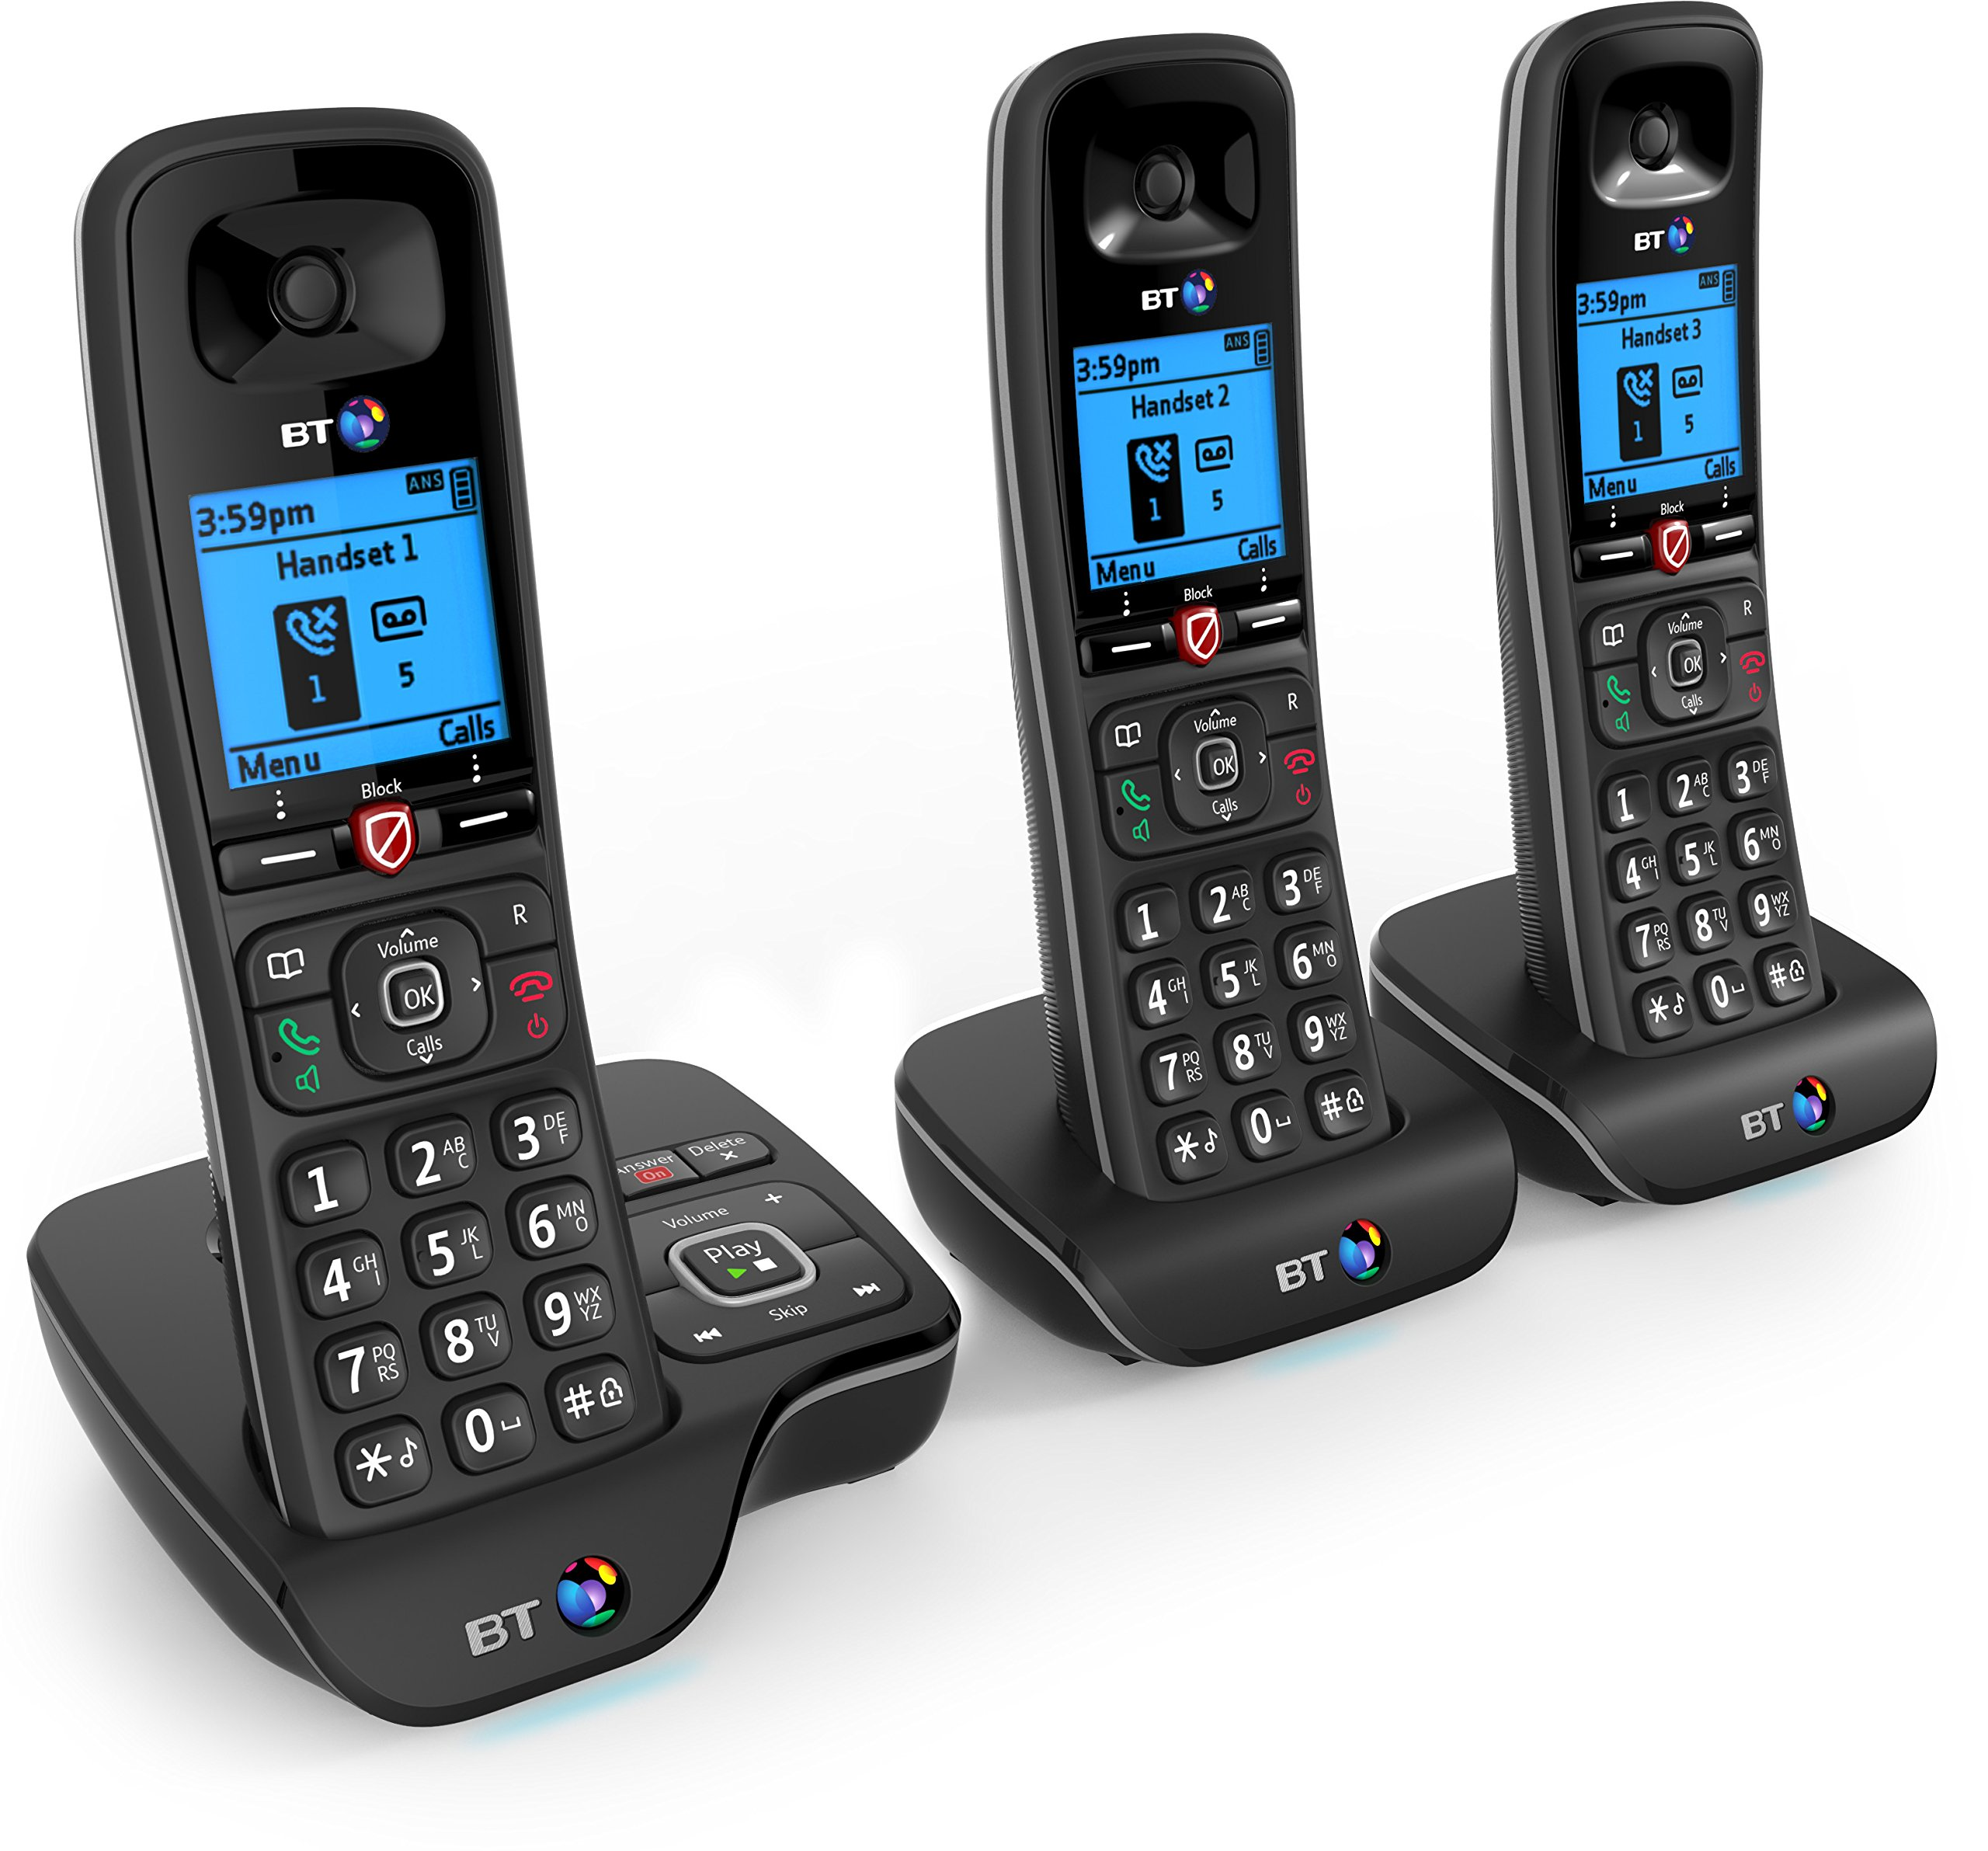 bt 6600 trio digital cordless phone with answer machine. Black Bedroom Furniture Sets. Home Design Ideas